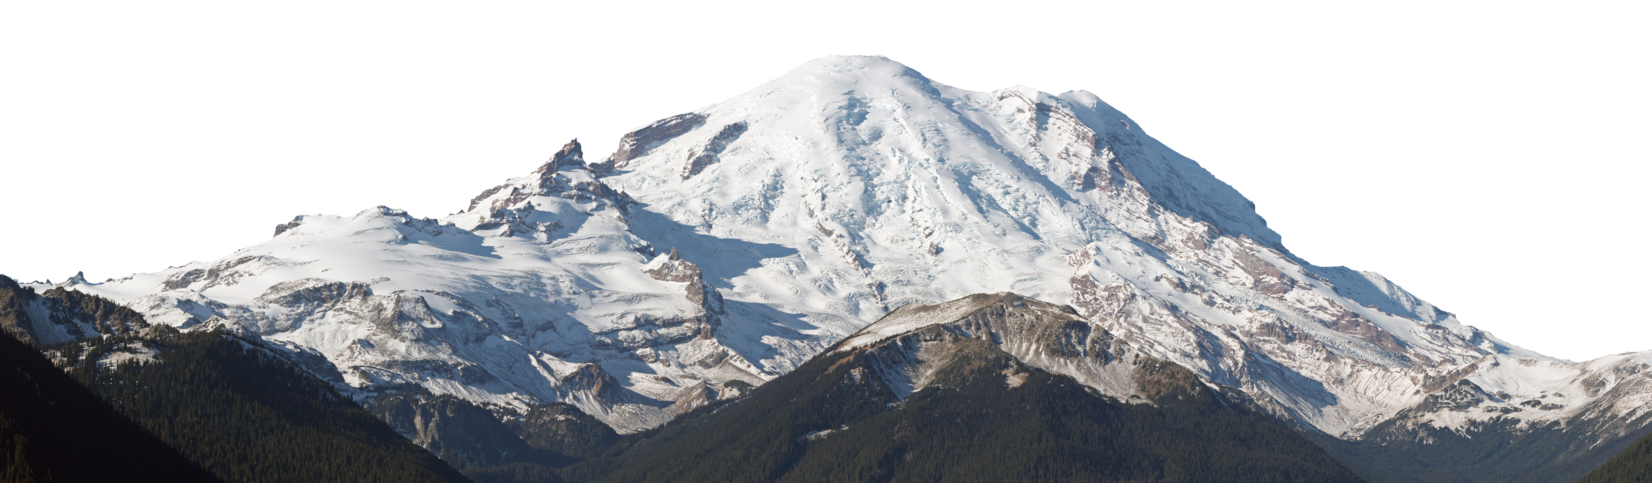 Mountain background png. Snowy by absurdwordpreferred on